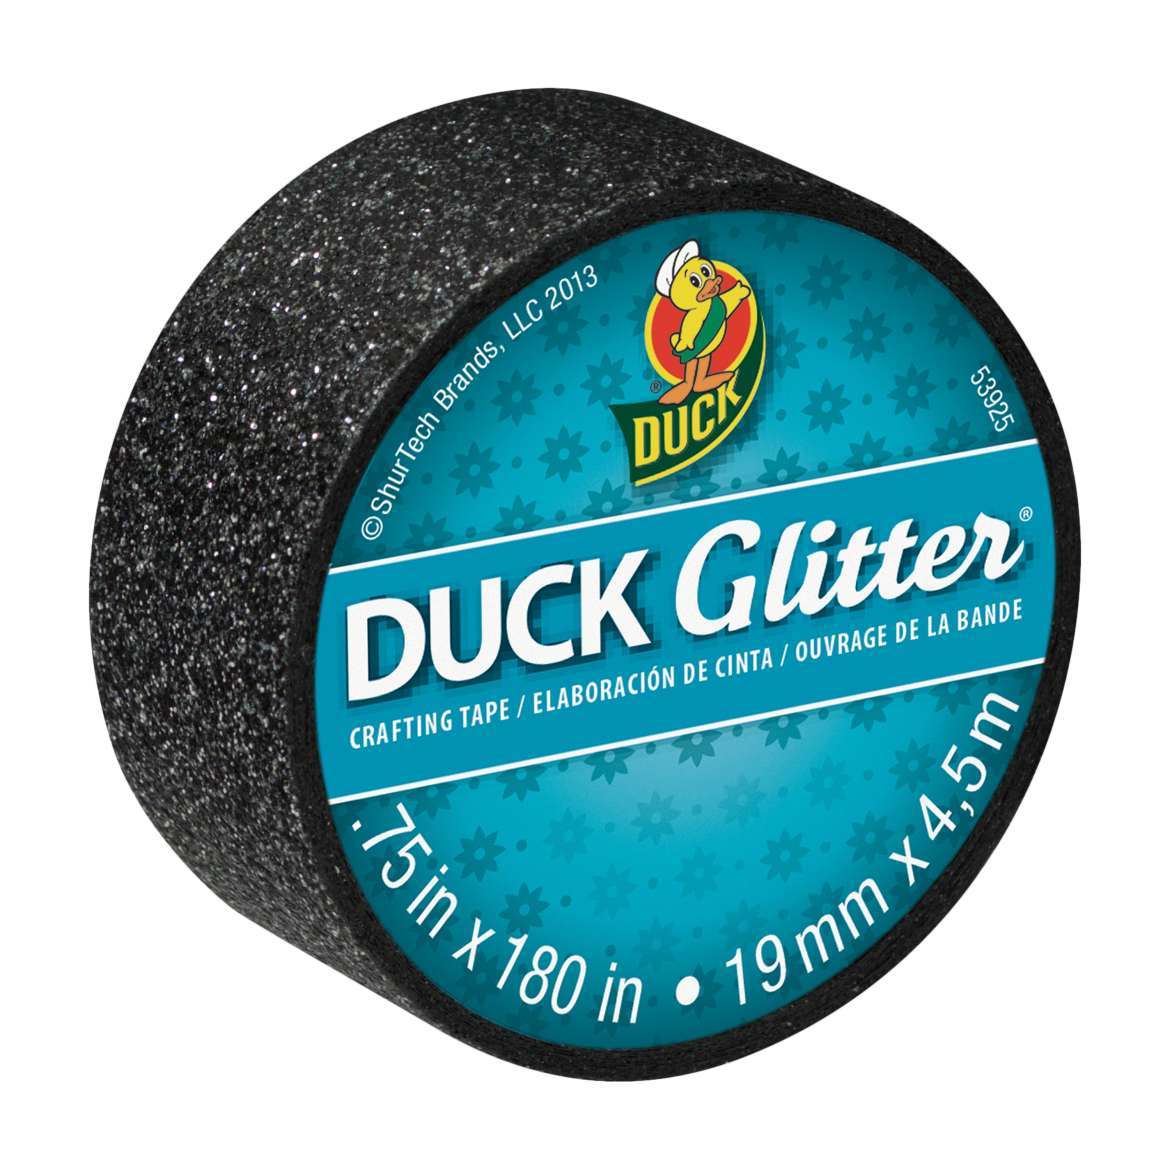 Duck Glitter® Crafting Tape - Black, .75 in. x 5 yd. Image